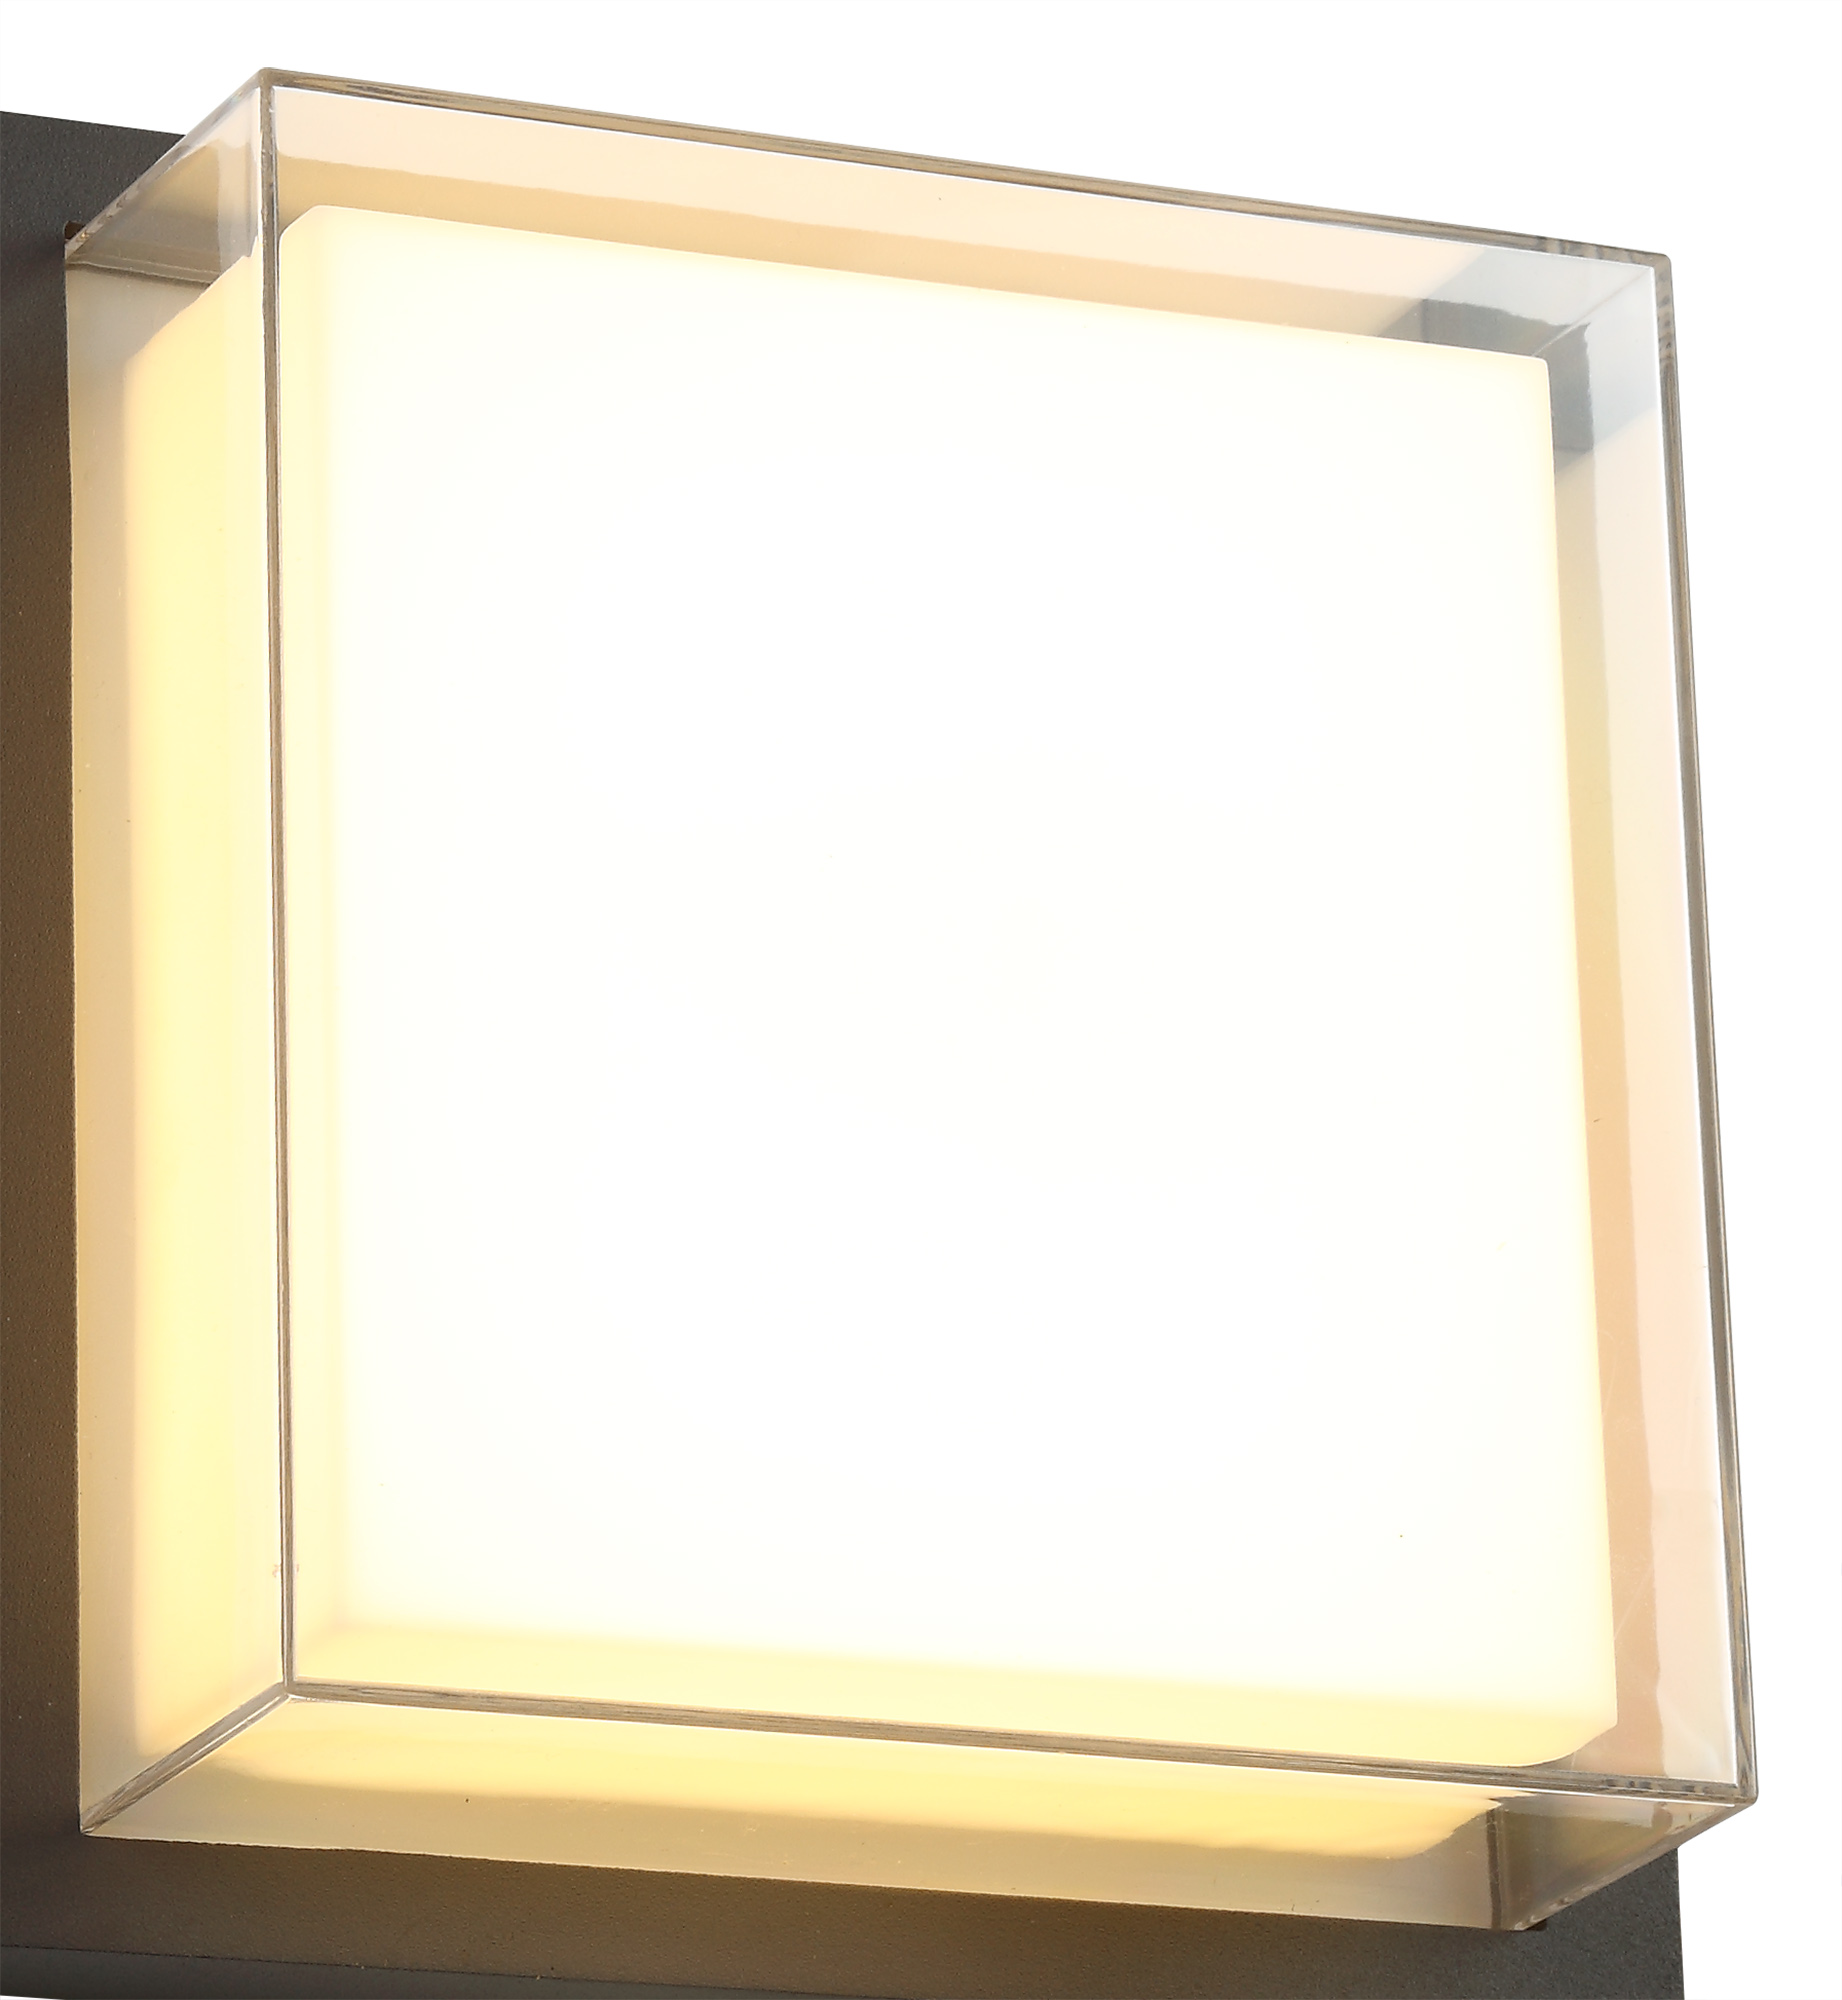 Wall Lamp, 1 x 16W LED, 3000K, 1135lm, IP65, Anthracite/Opal/Clear PC, 3yrs Warranty